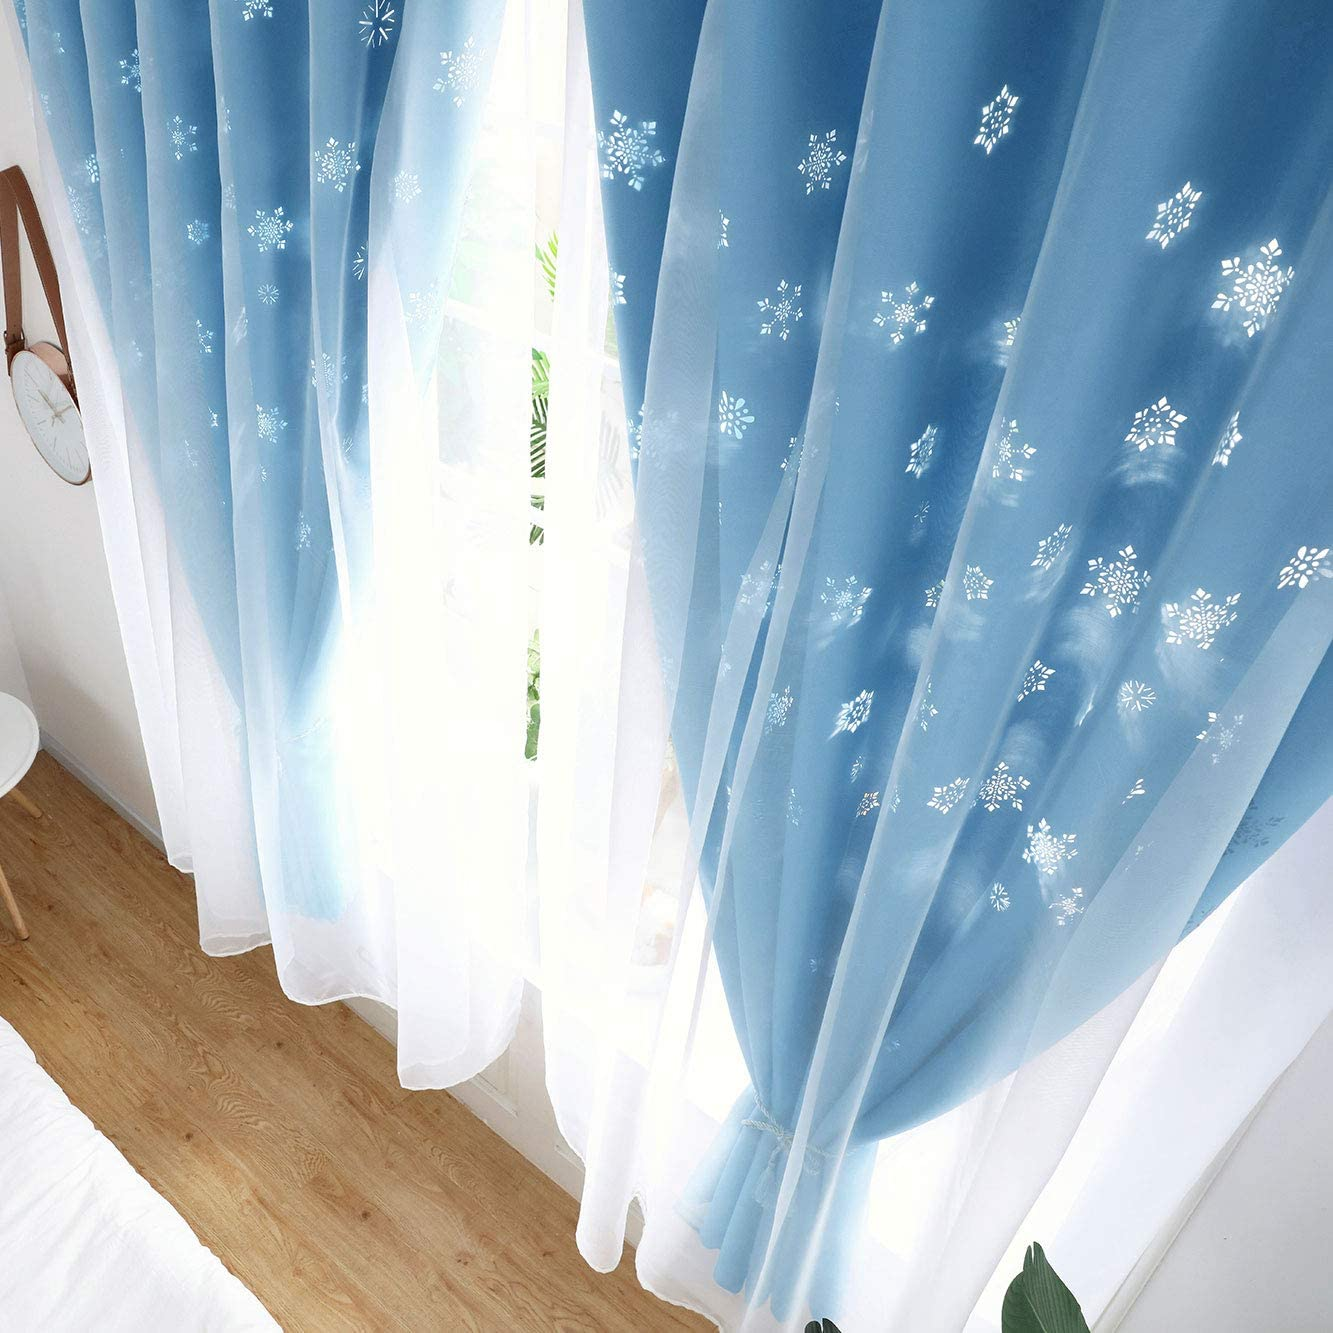 Hughapy Kids Blackout Curtains Tulle Overlay Snowflake Cutouts Curtain Double Layer Blackout Window Drape for Living Room Bedroom W59 x L79,Blue 1 Panel